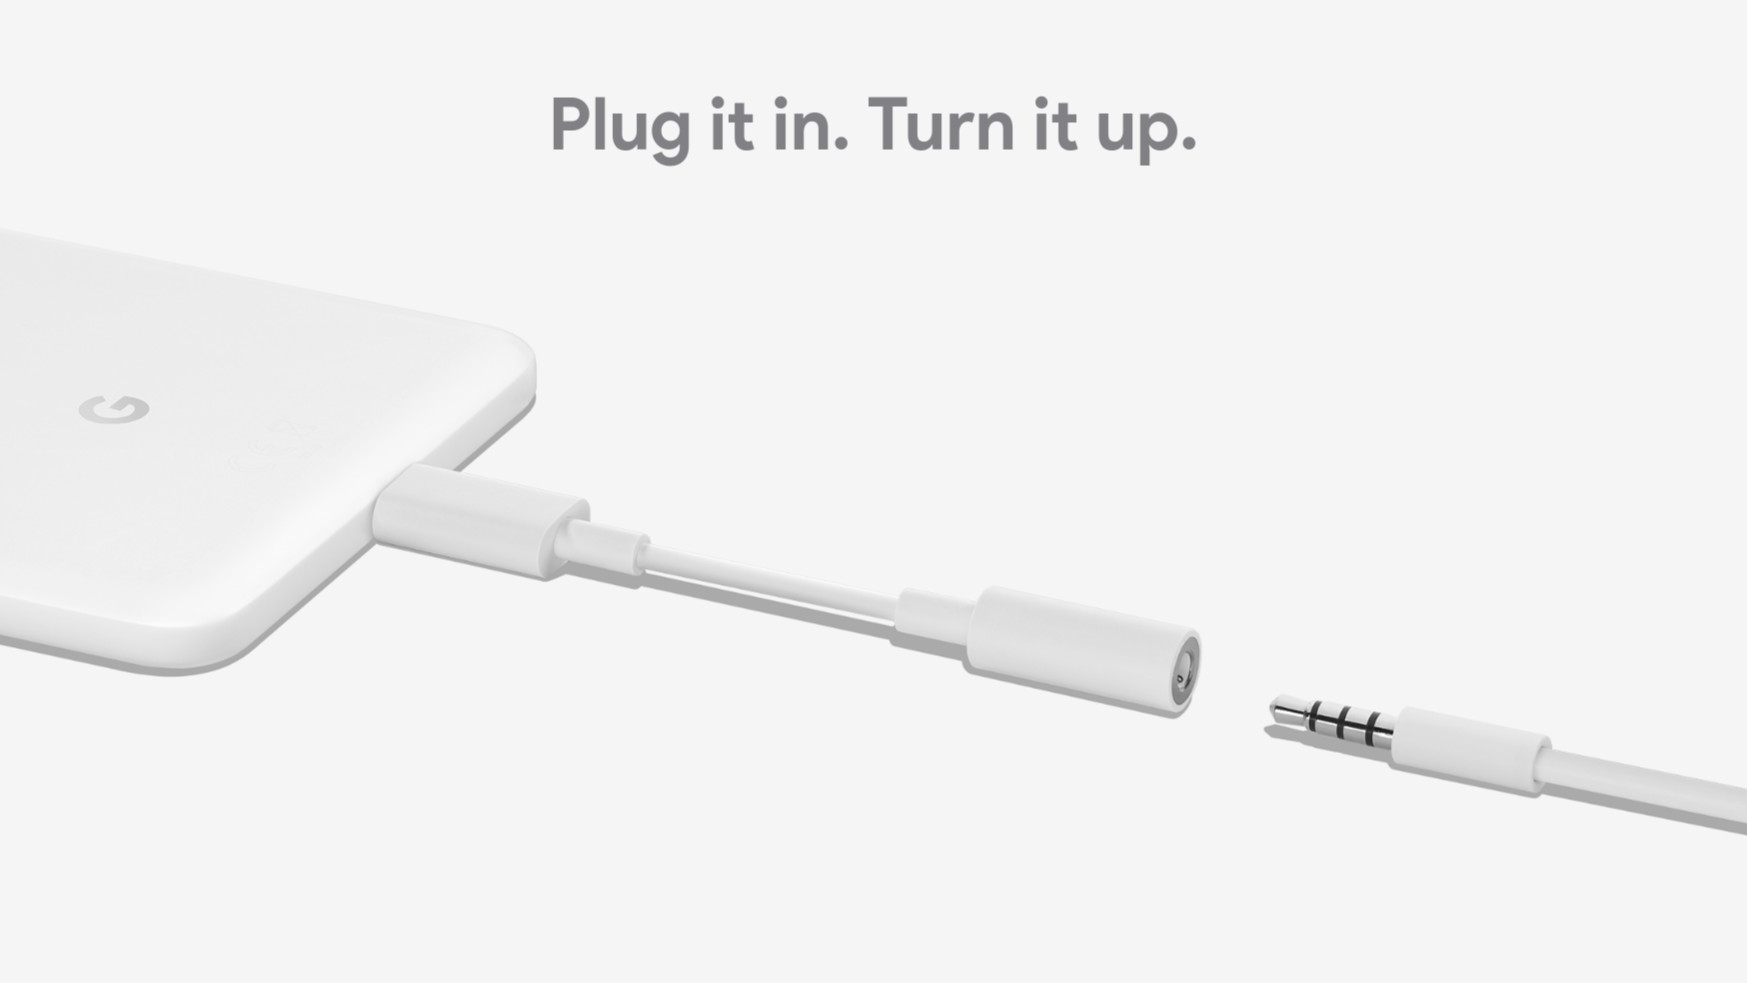 Google releases an improved headphone jack adapter with better battery life